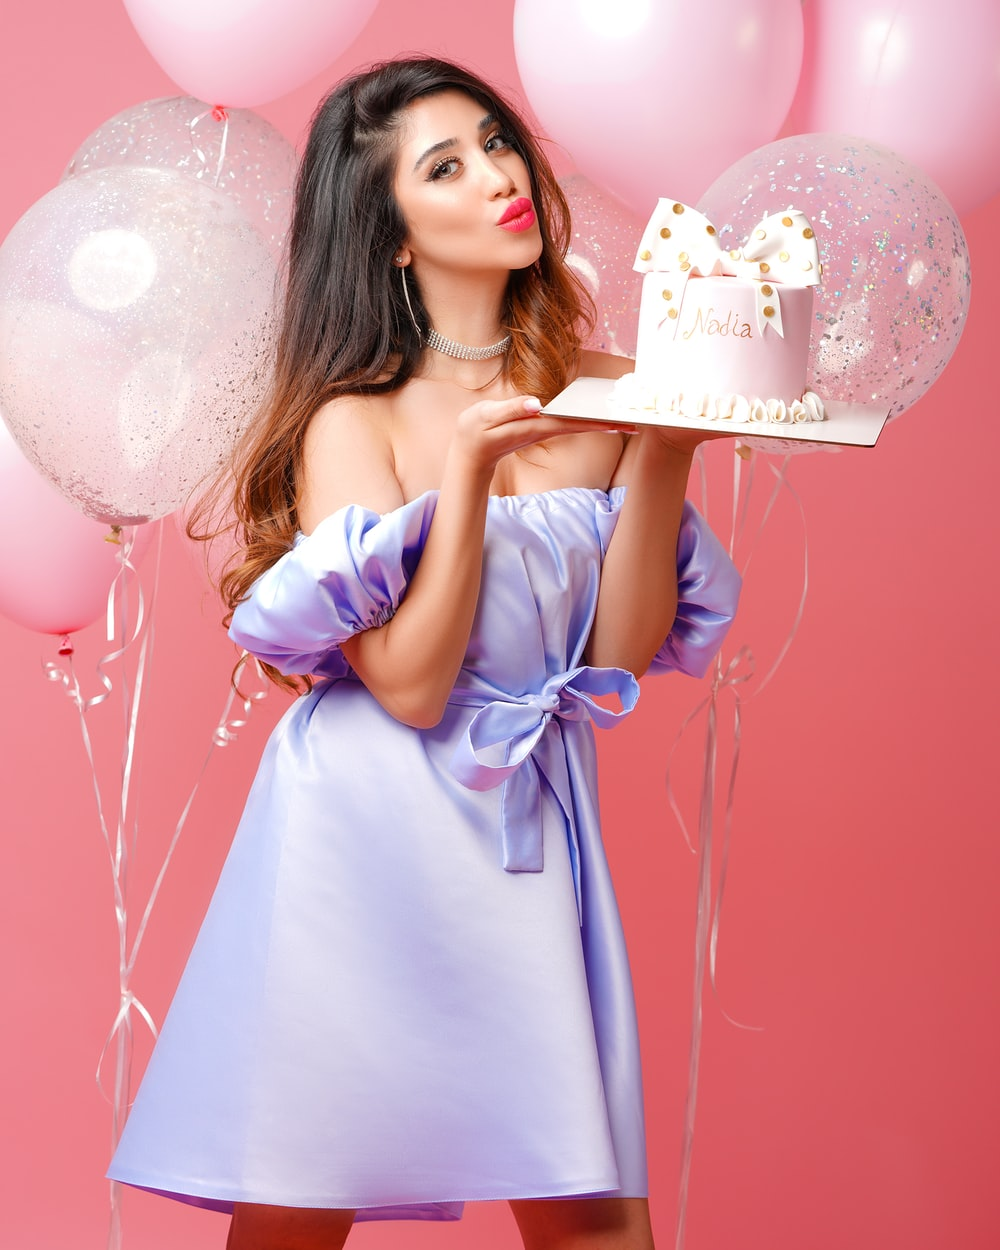 woman in pink dress holding white and pink happy birthday cake